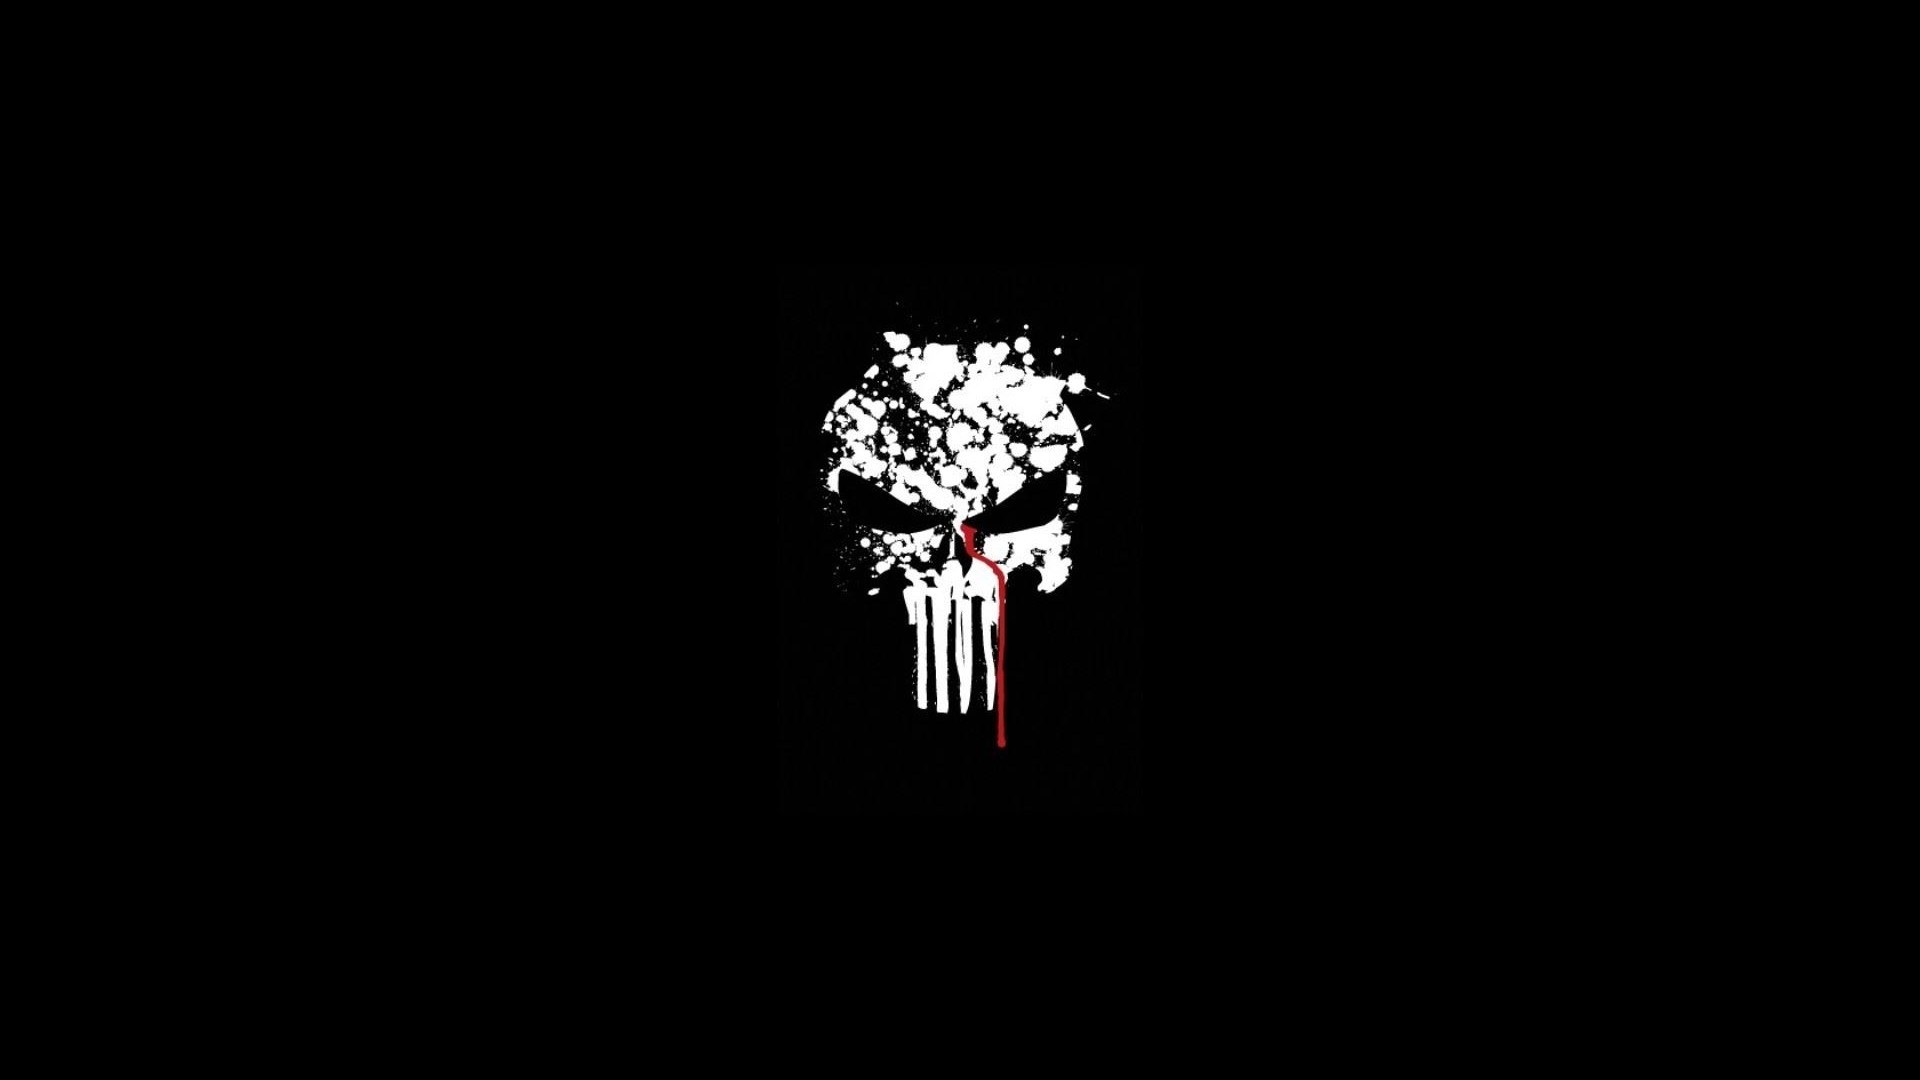 punisher-time-pictures-for-background-wallpaper-wpc5808259